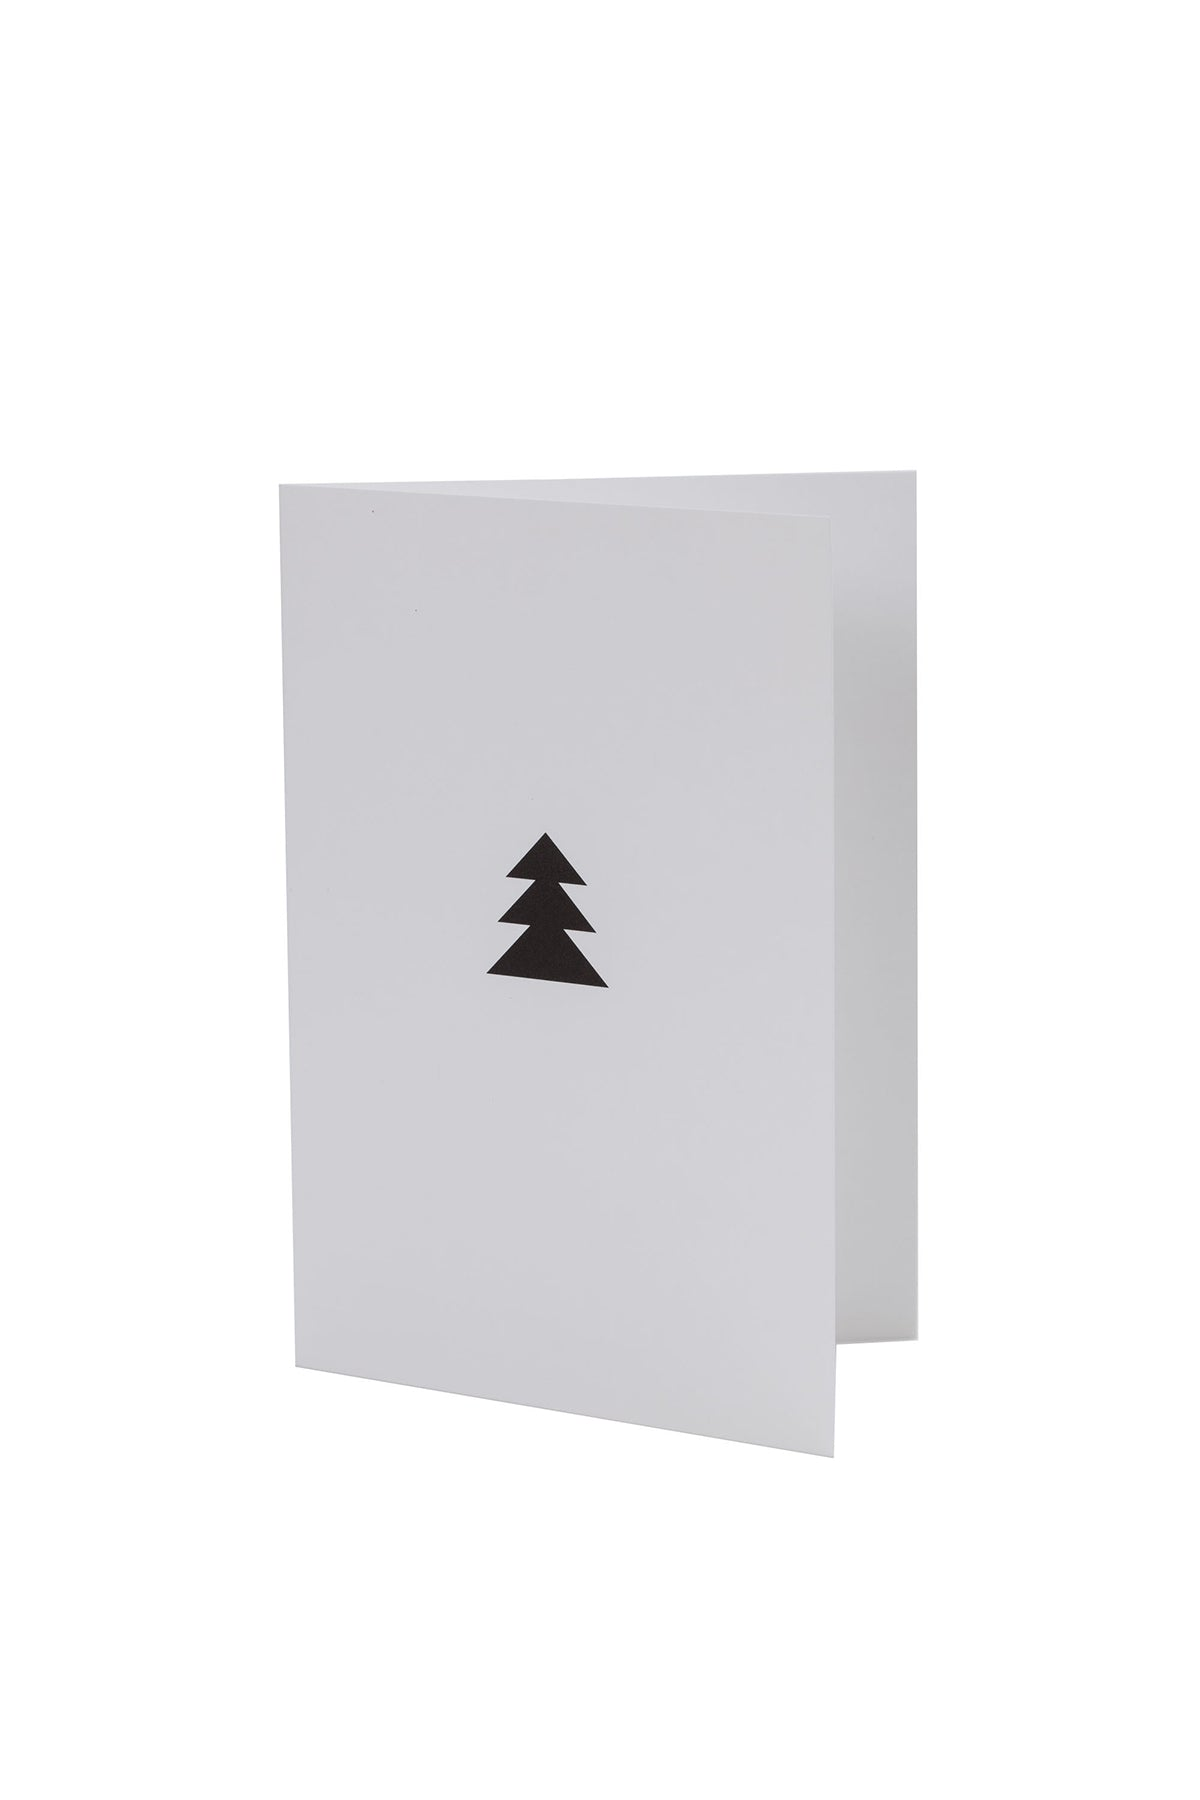 CHRISTMAS TREE GREETING CARD IN BLACK